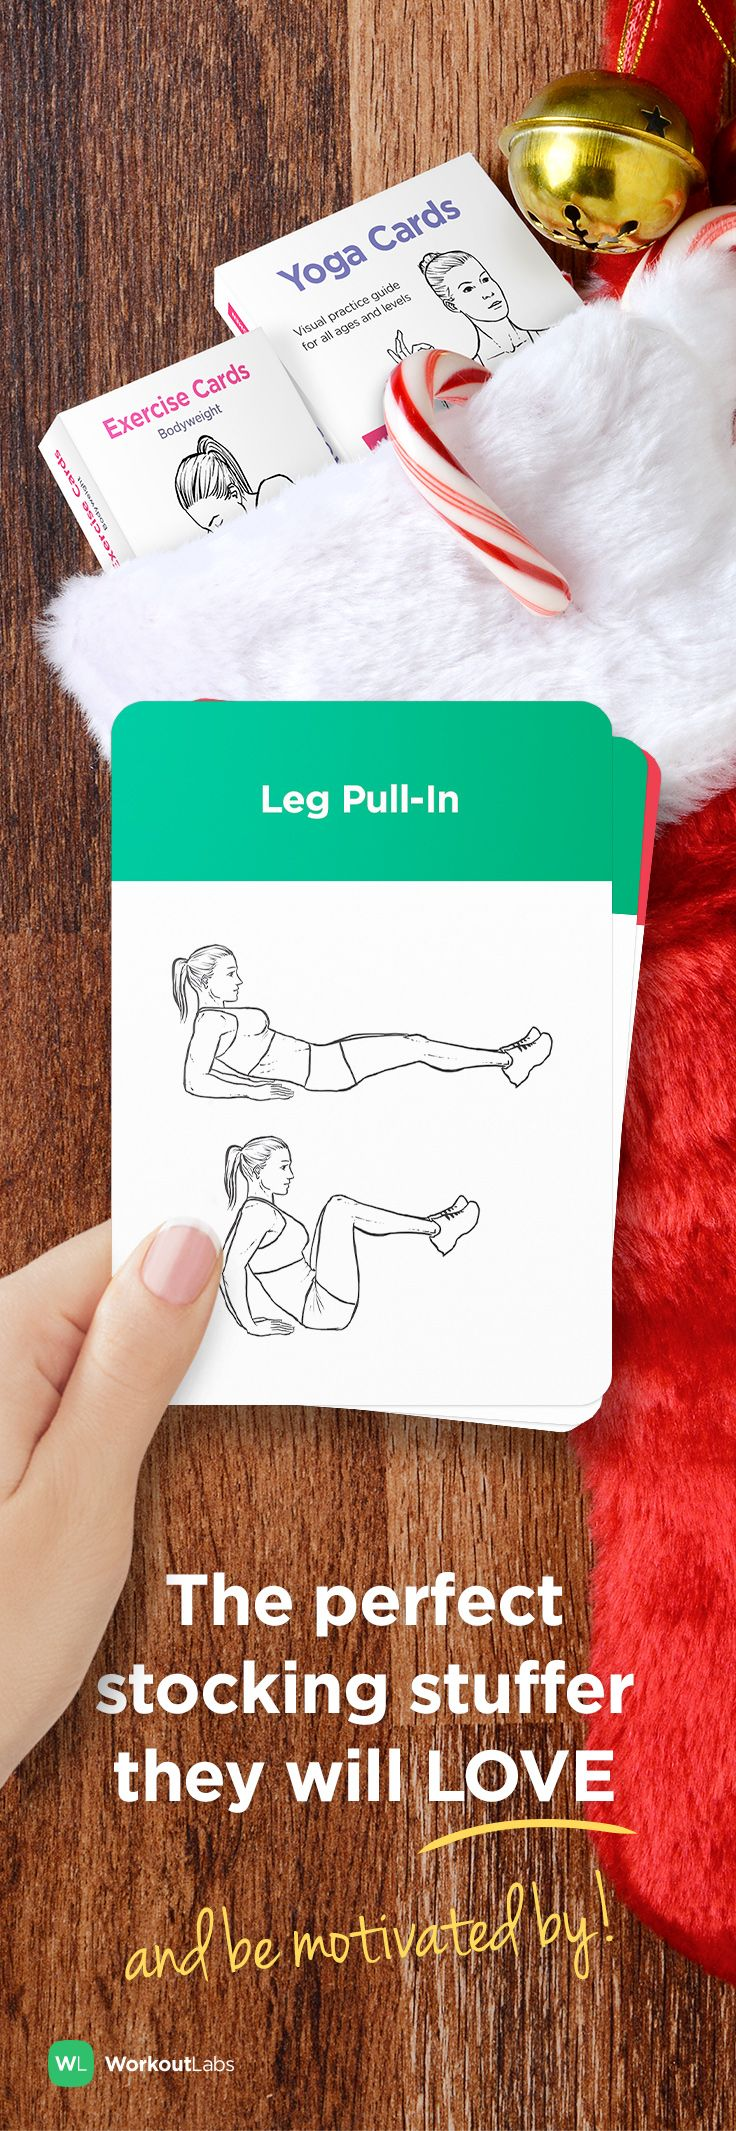 Motivate your friends and family for a healthy 2016 with the perfect workout stocking stuffer for anyone on your list – Exercise Cards from http://WLShop.co